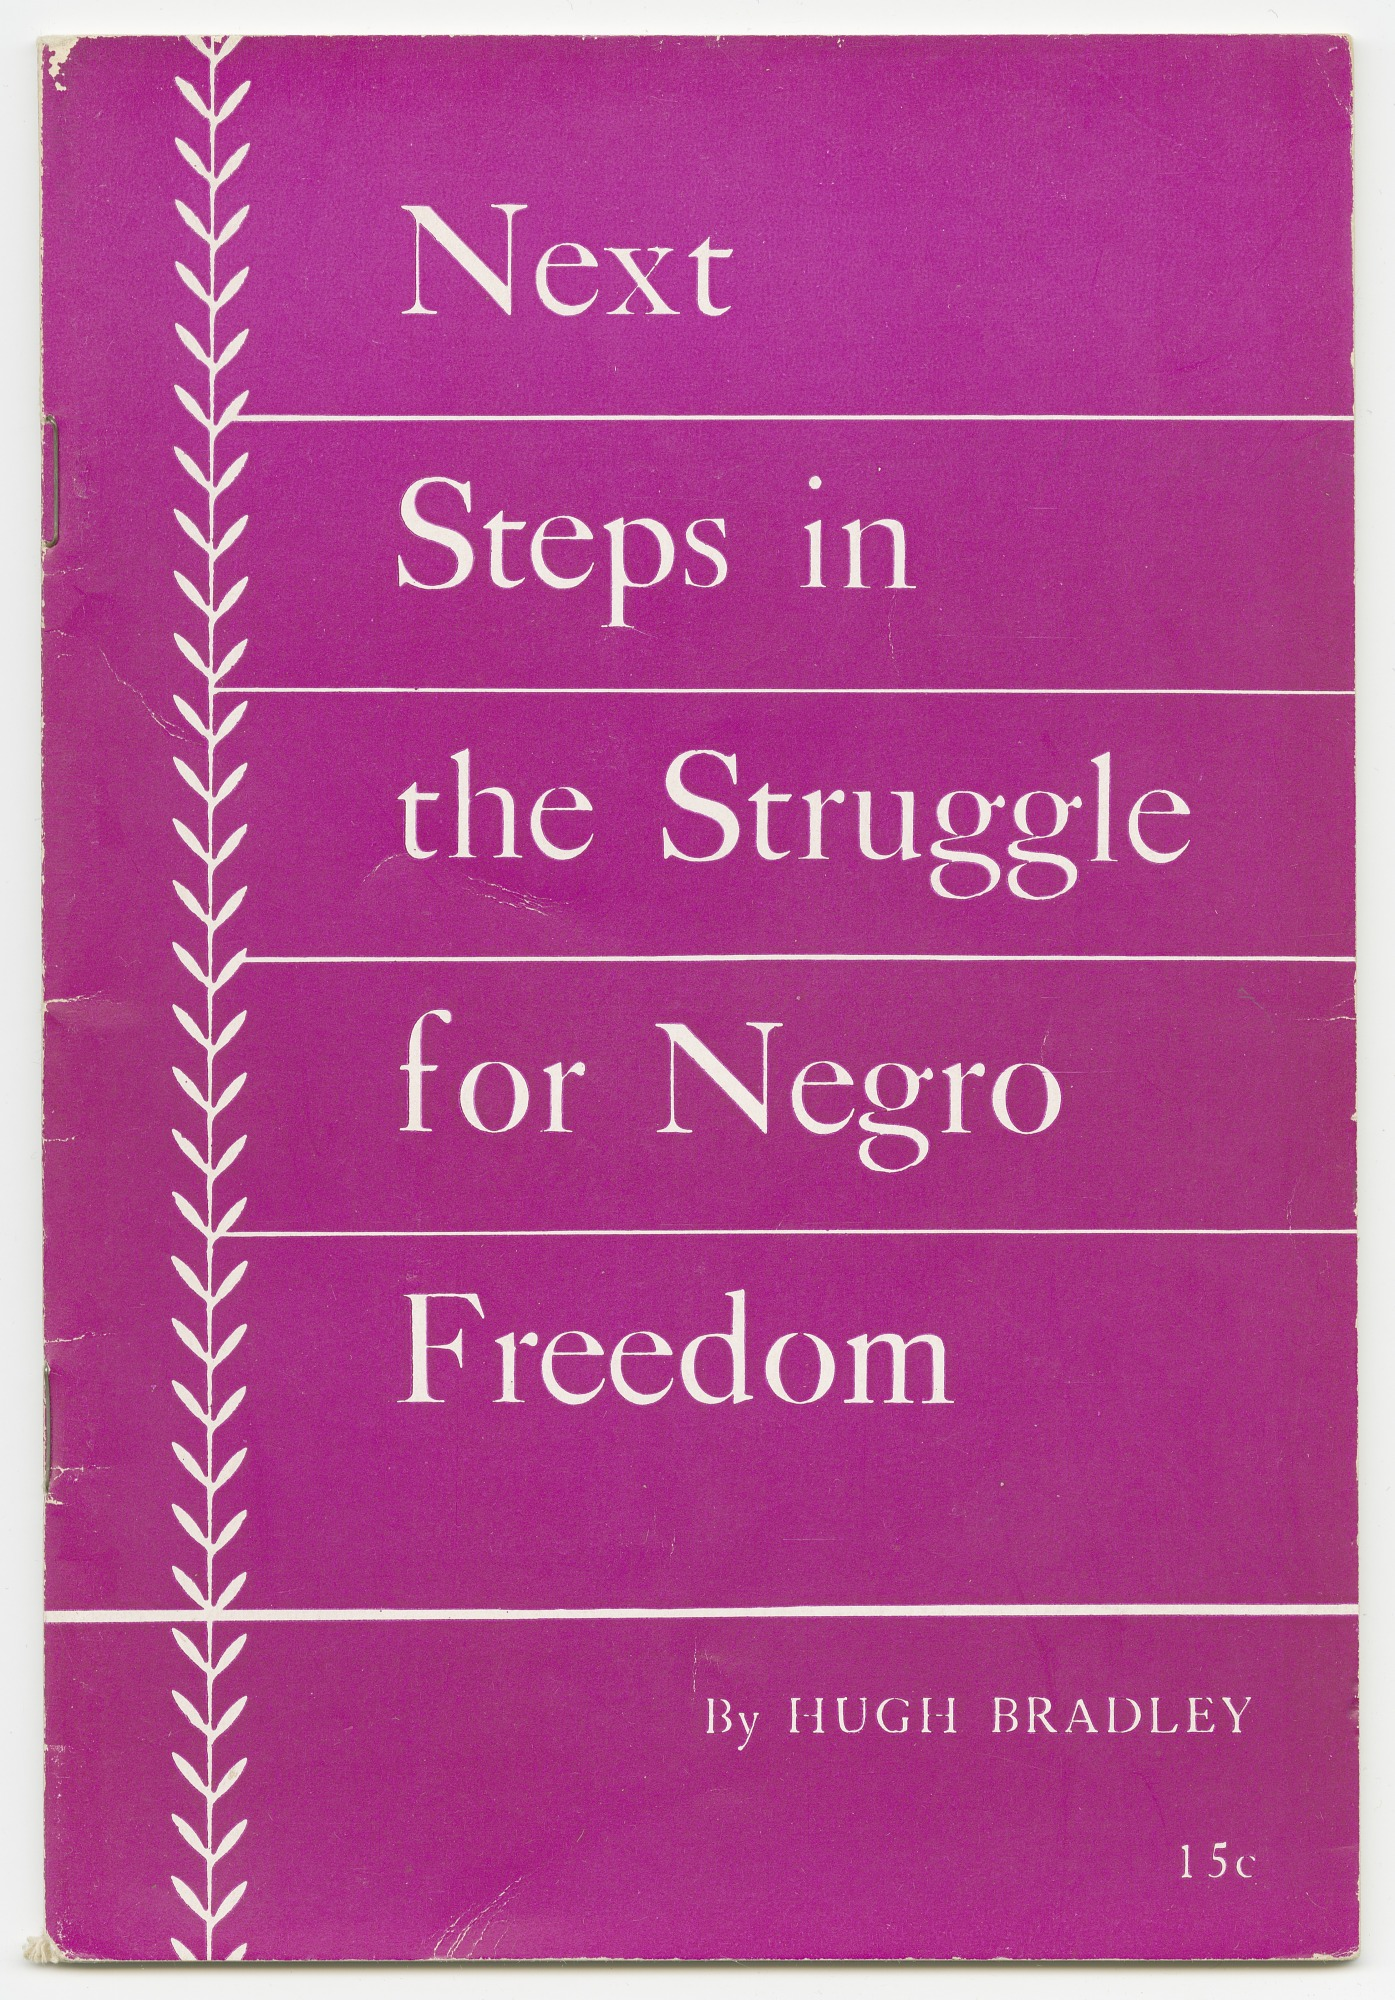 Image for Next Steps in the Struggle for Negro Freedom